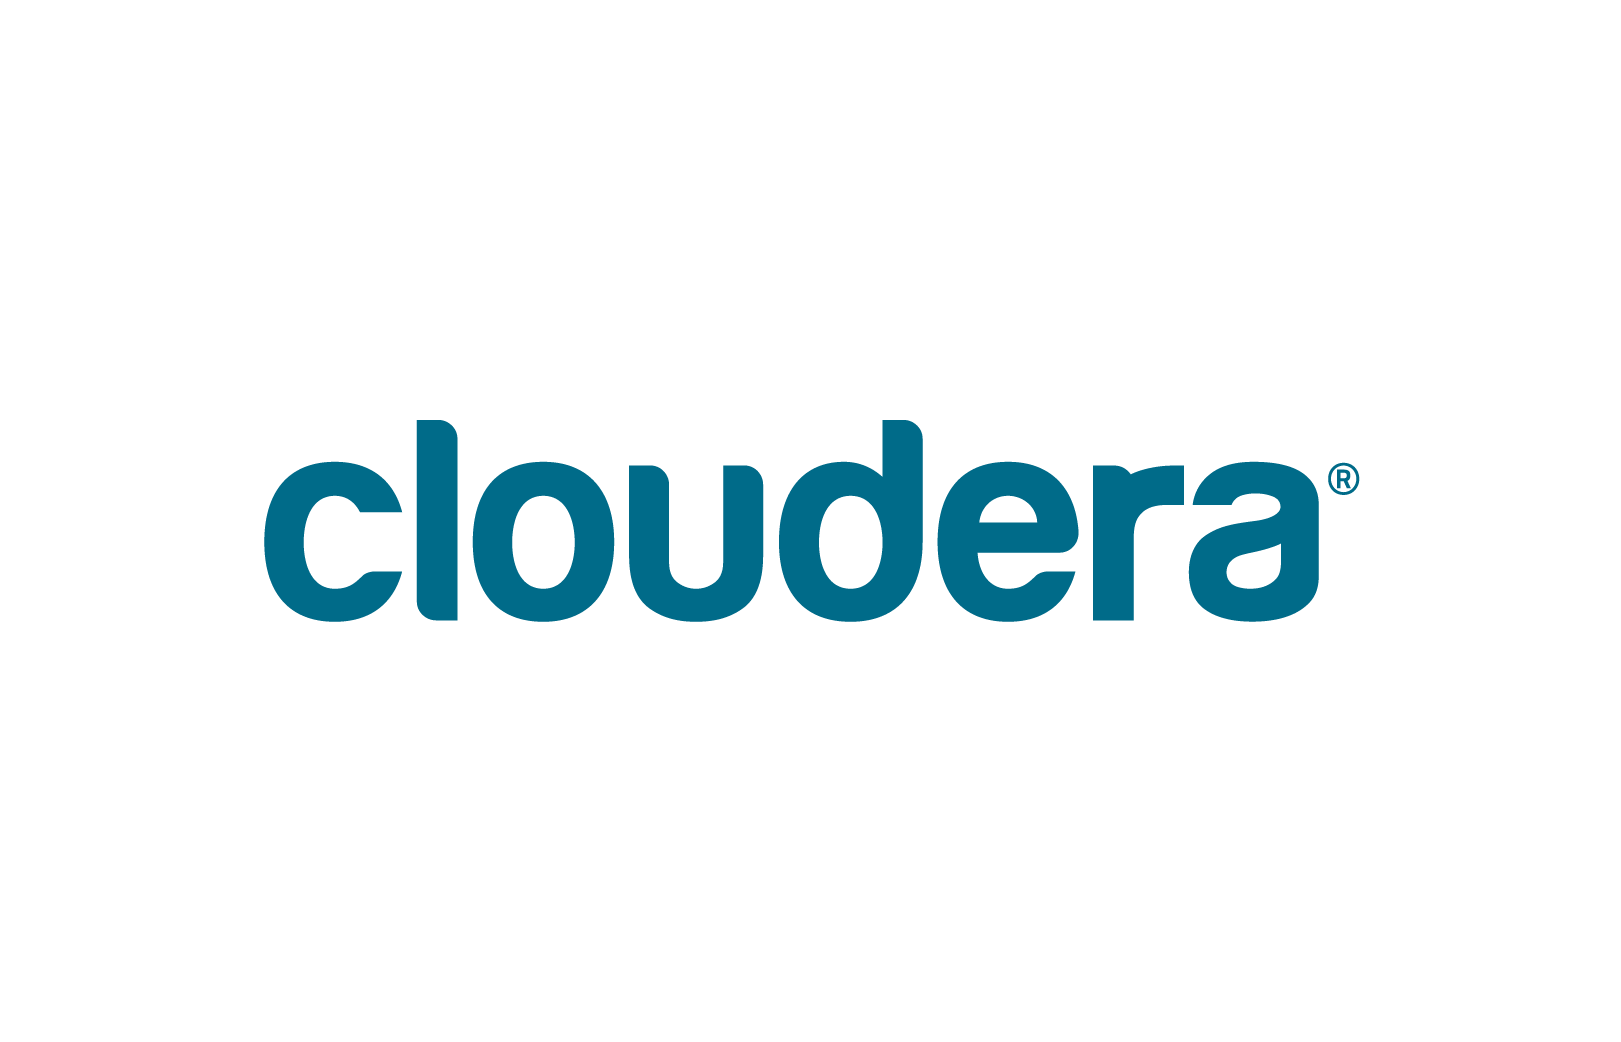 big data cloudera